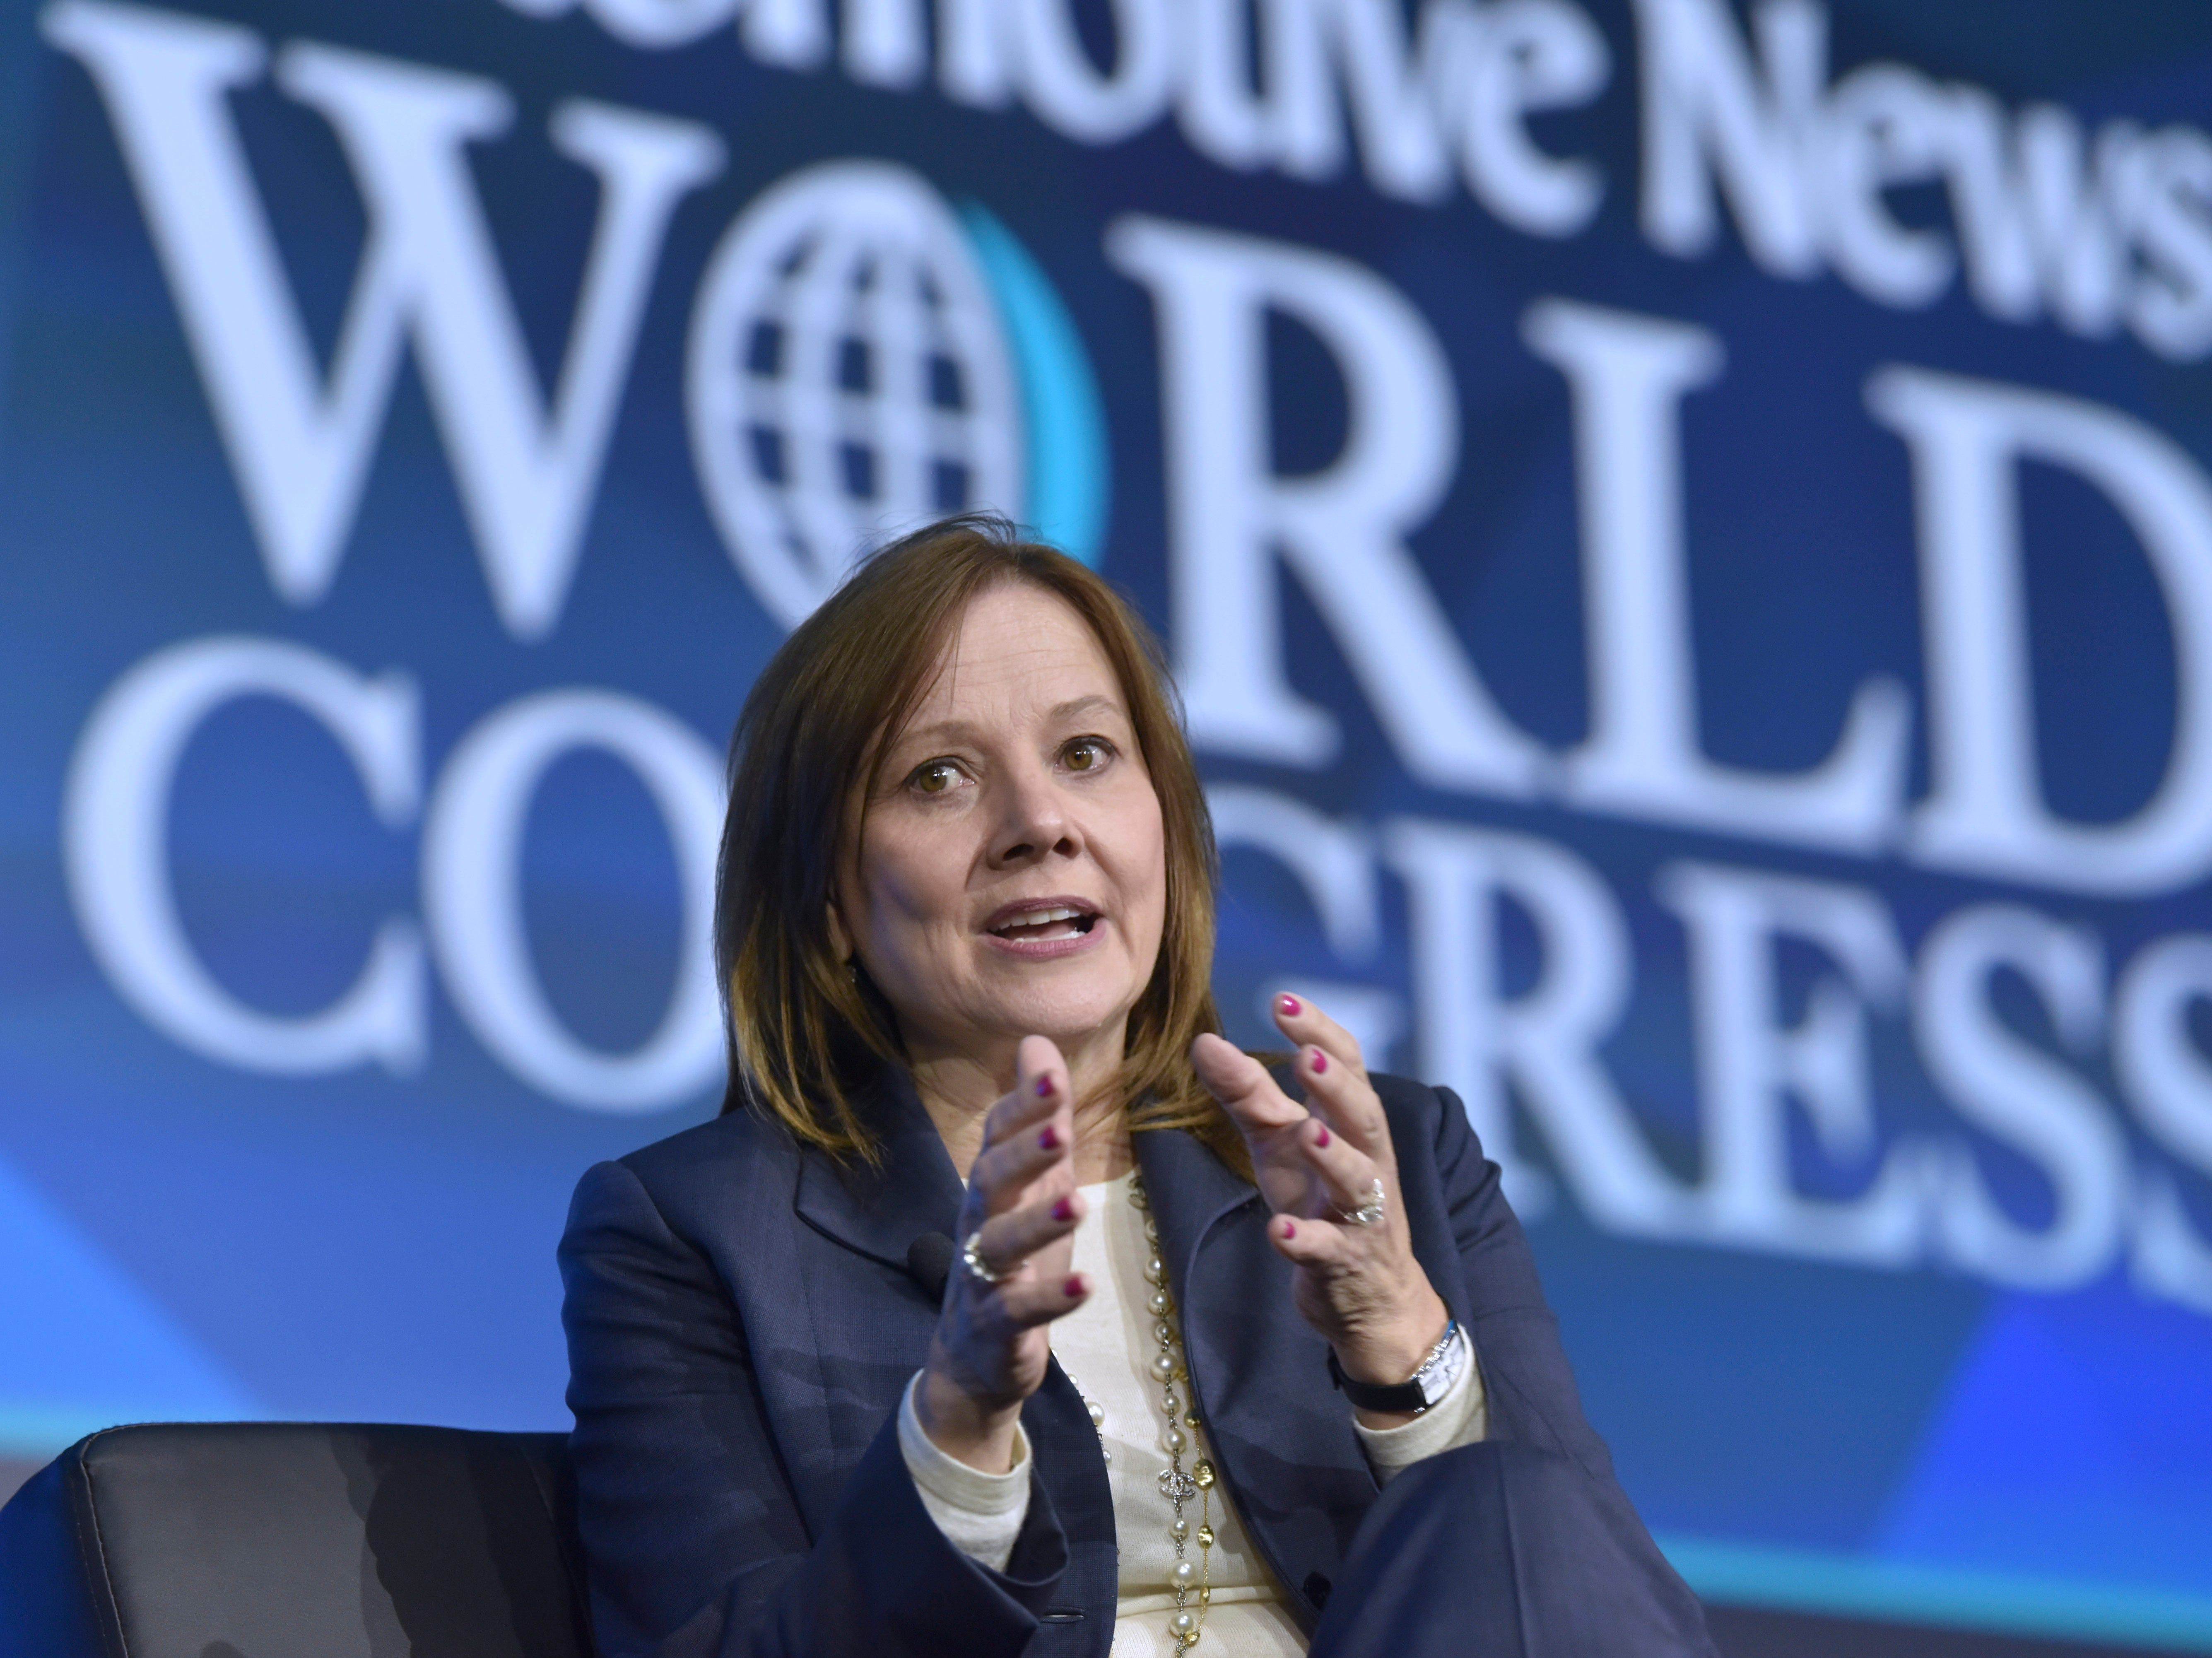 GM's Barra: We have more products to build in U.S.